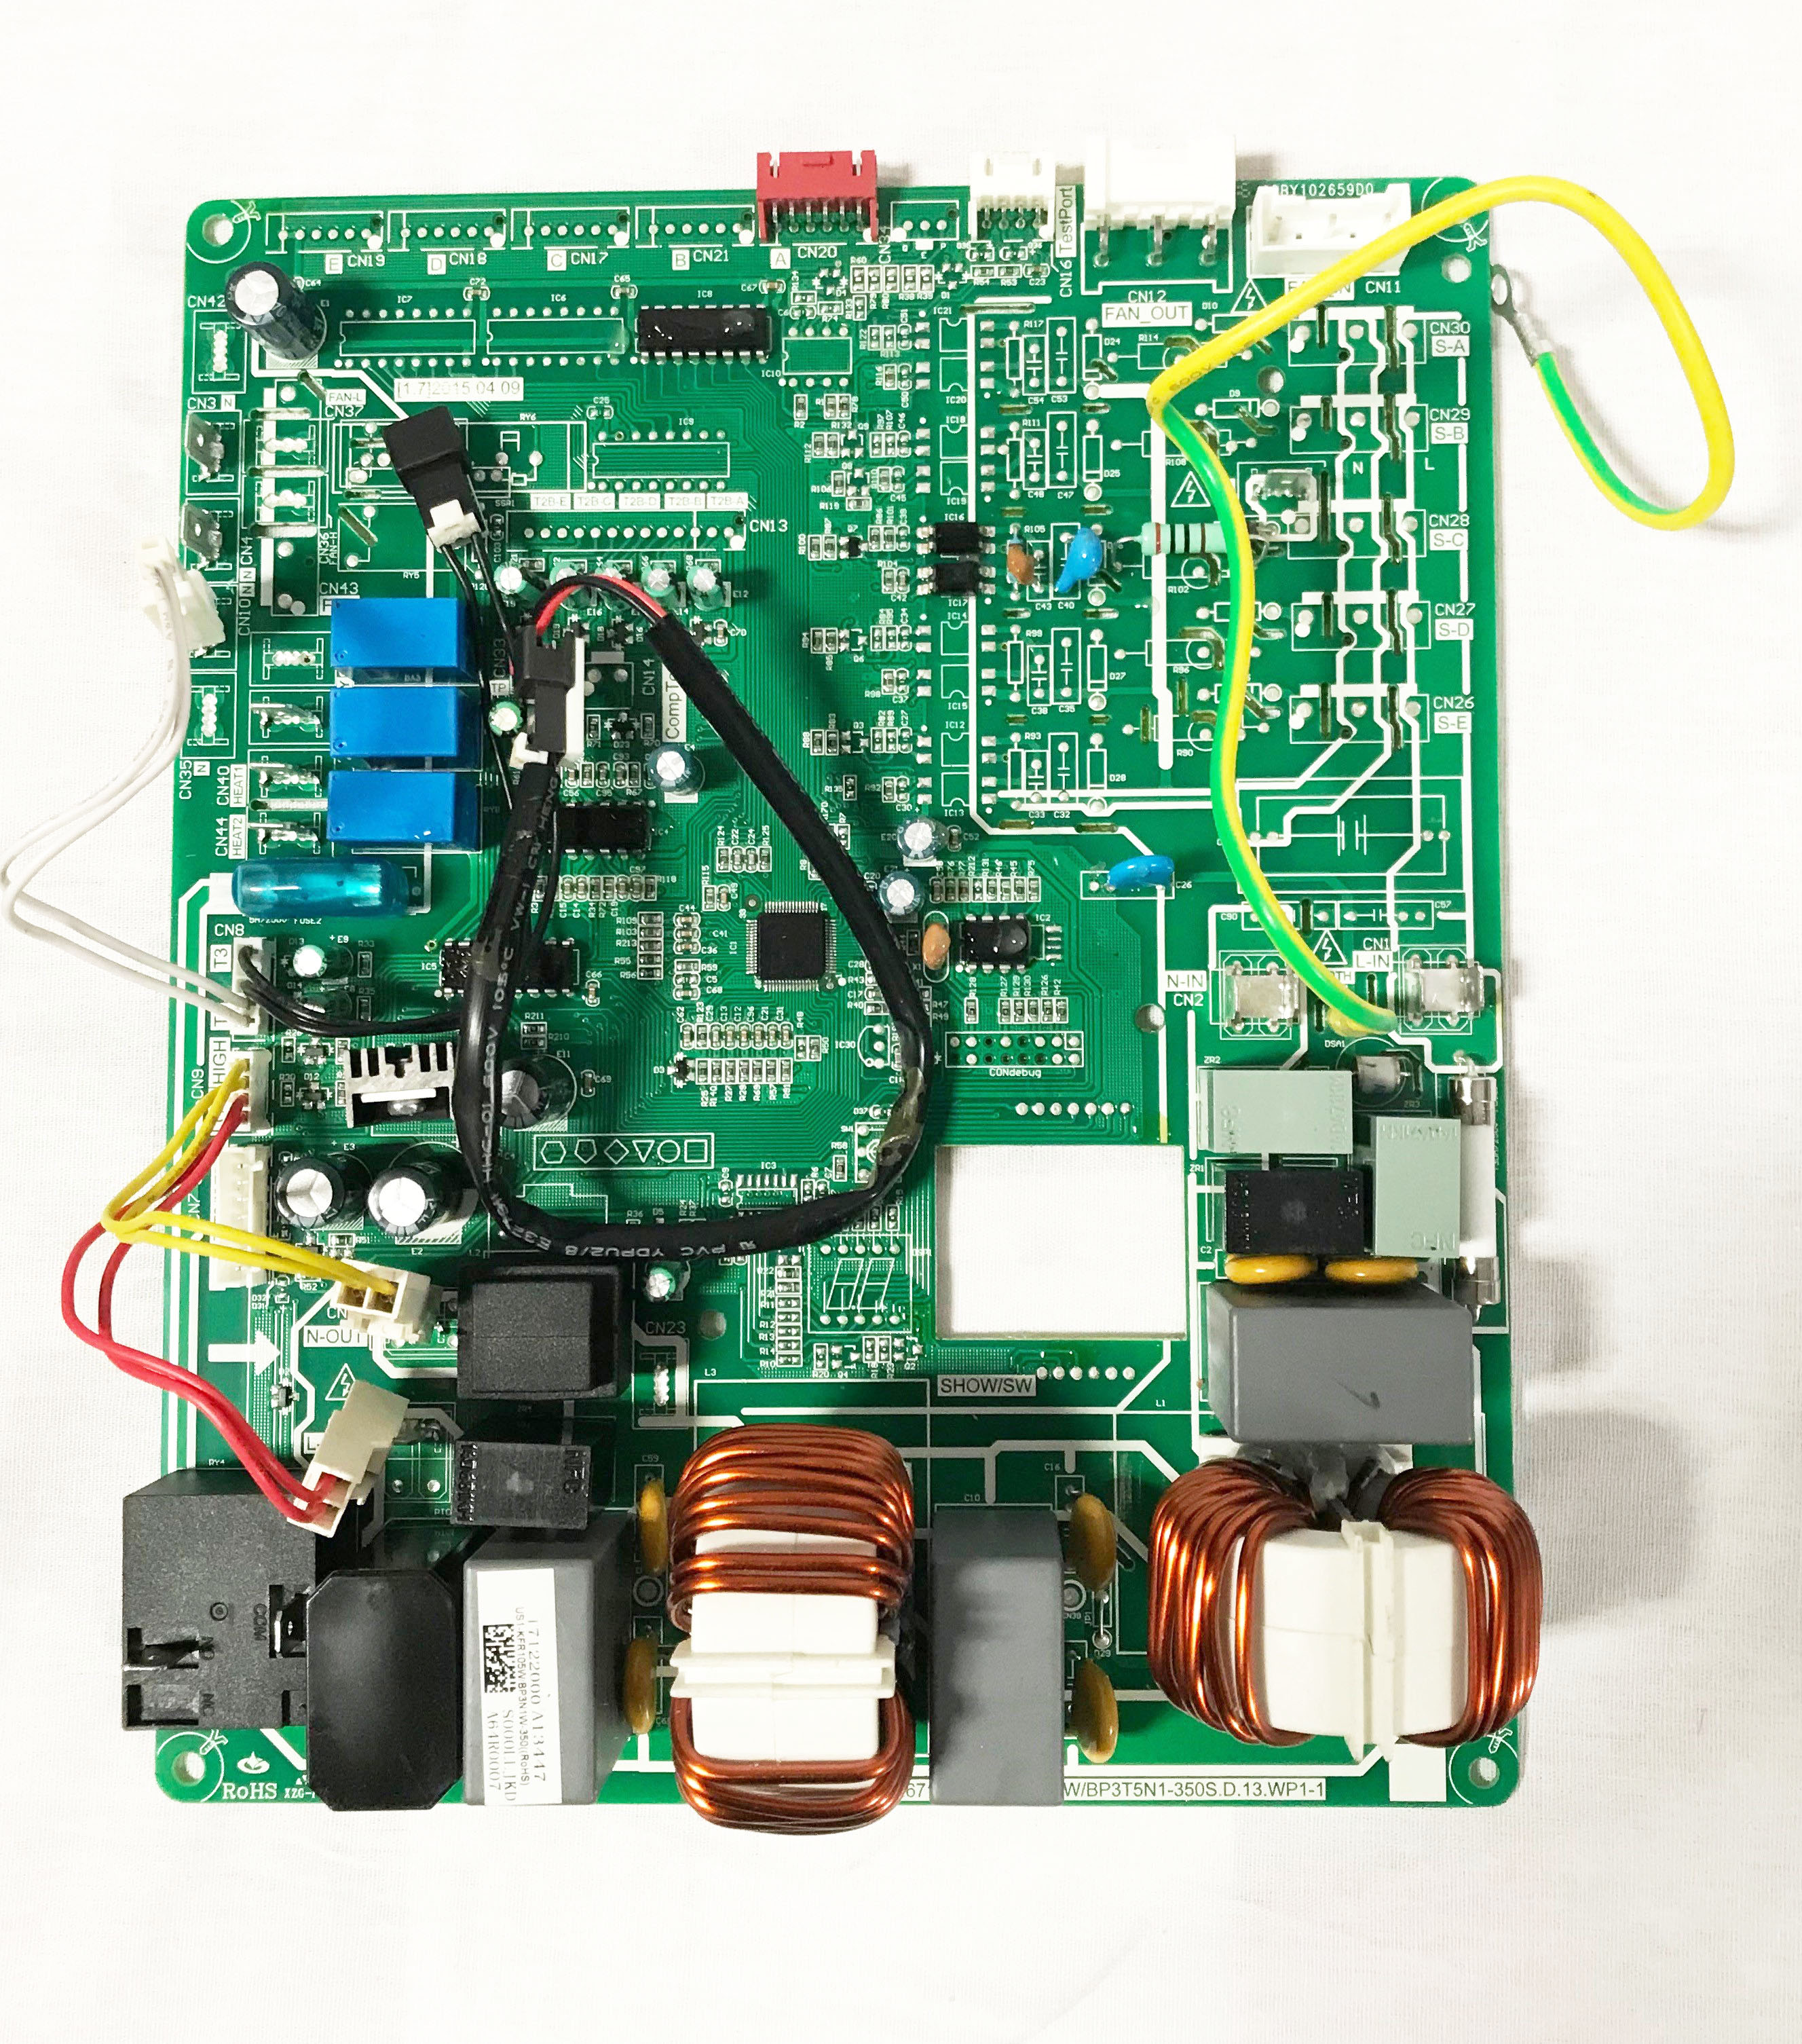 T1 Circuit Board Wiring Diagram Services Jack Wall Mount Air Handlers Control Thermocore Systems Rh Thermocoresystems Com